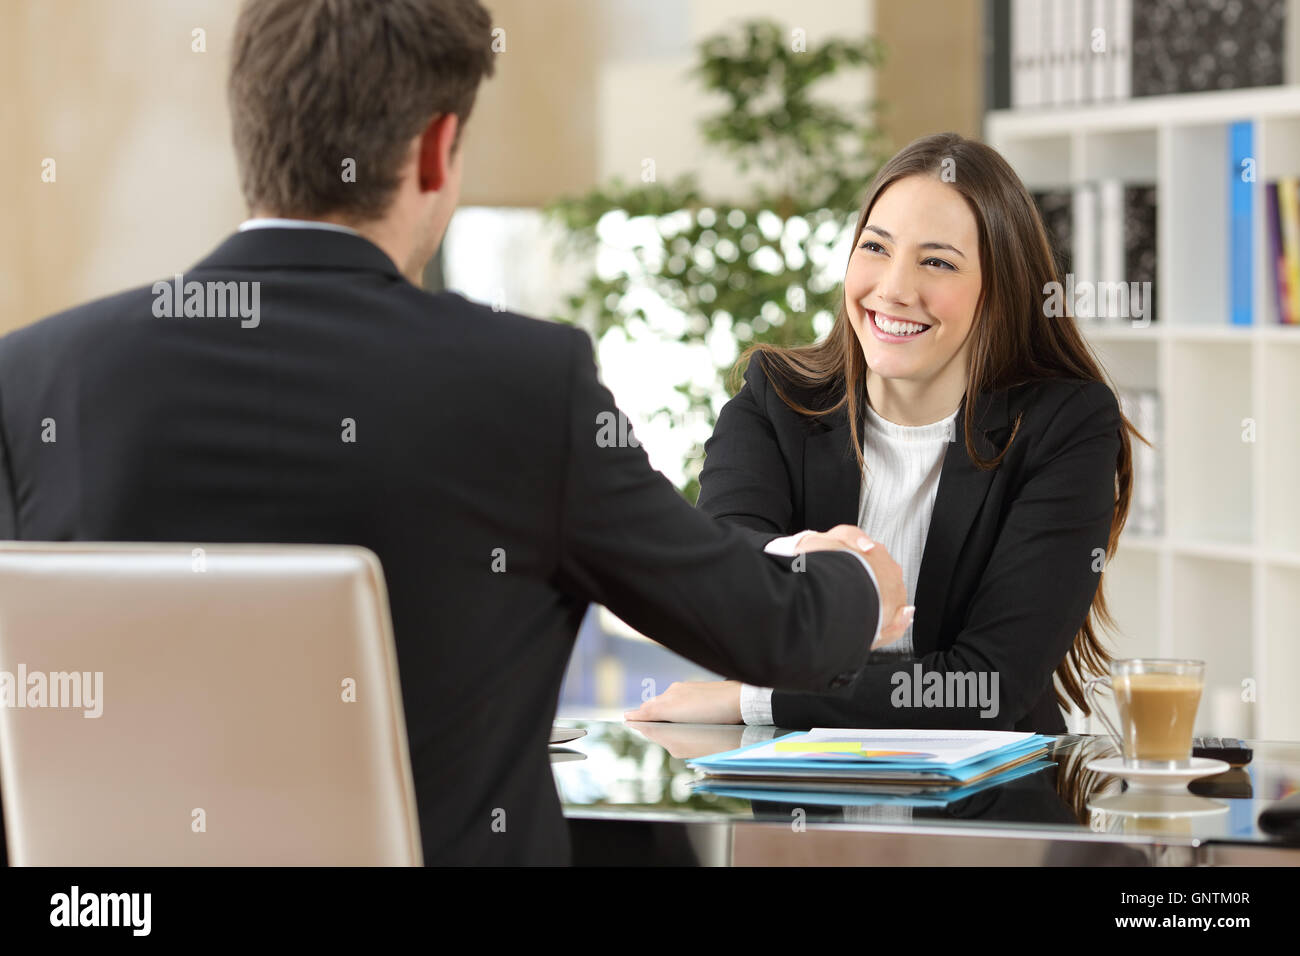 Businesspeople handshaking after negotiation or interview at office - Stock Image